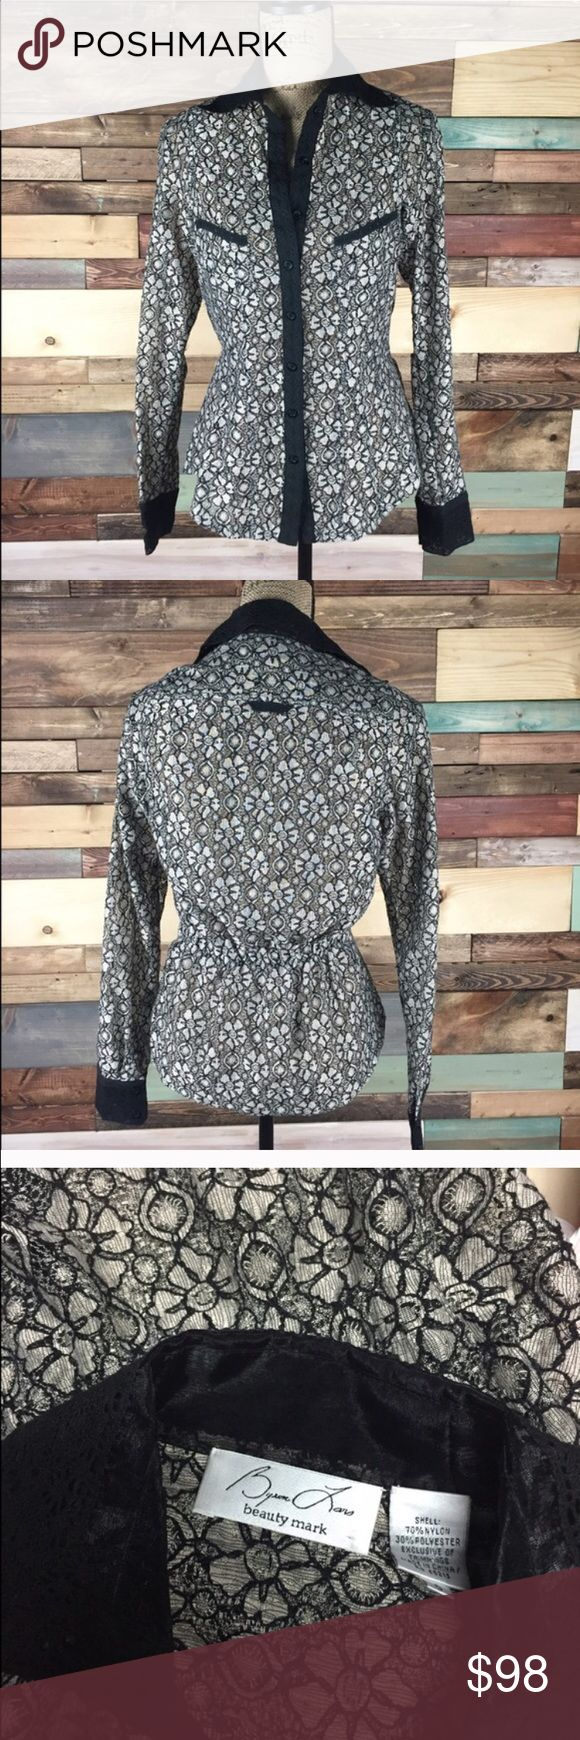 """Bryon Lars Nude/ Black Lace Button Down - 6 Bryon Lars Beauty Mark Designer Nude/ Black Lace Button Down - 6  Extra interior button & hook hidden to prevent buttons from gaping. Batwing style arms.   Bust: 20"""" laying flat / Length: 25""""  #woodsnap #beautymark #byronmars #lace #nudelace #blacklace #buttondown #formal #dressy Anthropologie Tops Button Down Shirts"""